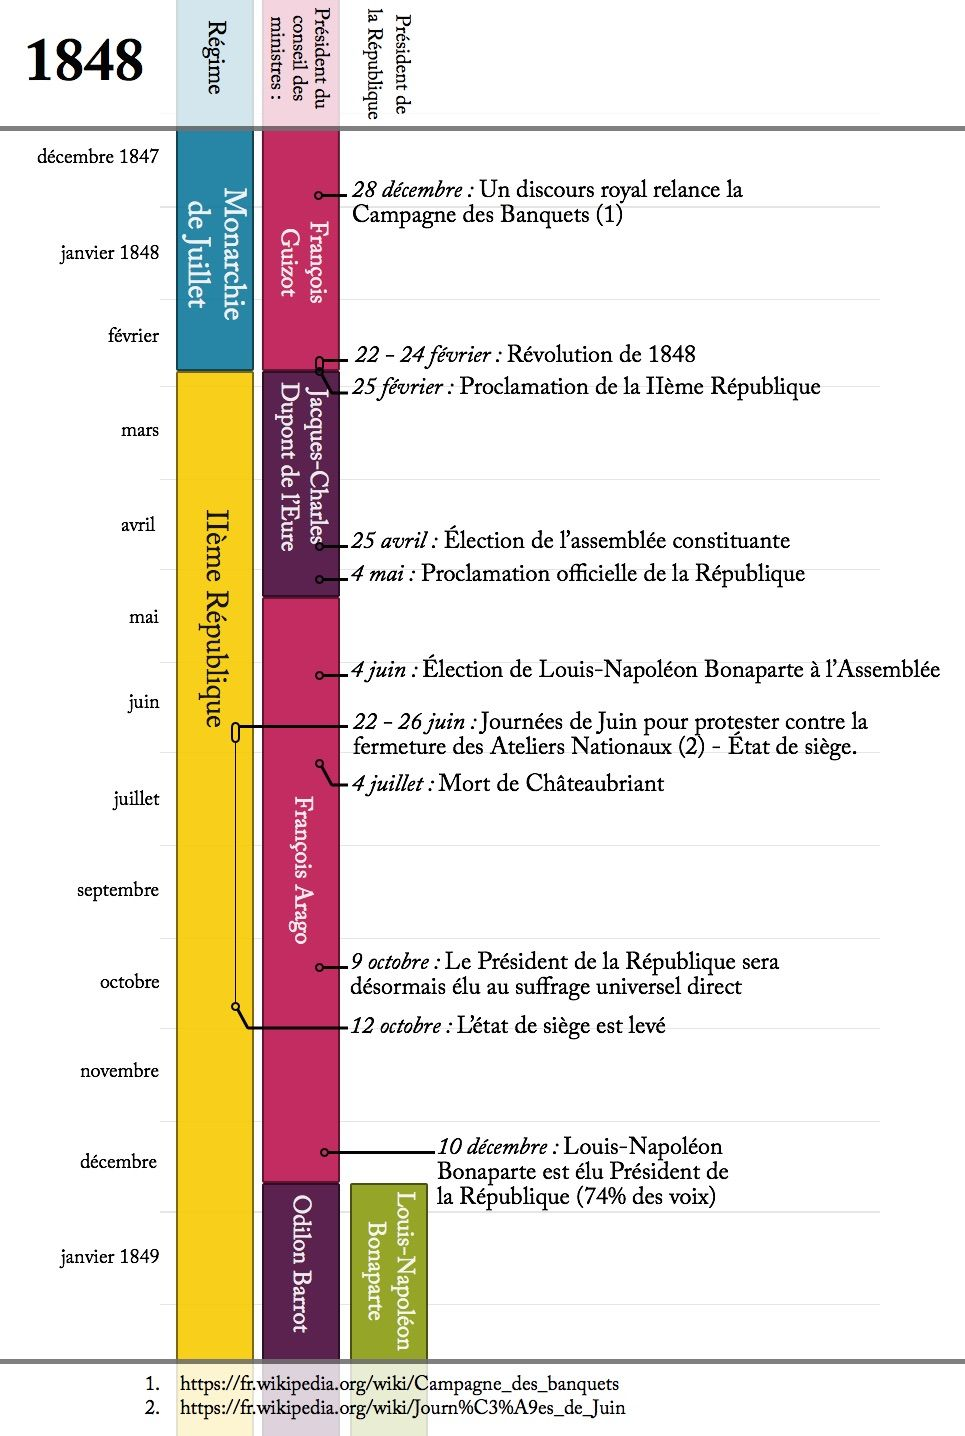 An historical timeline of the year 1848 - Useful when you're reading something and doesn't remember who is President or its main events. I use it everyday while reading Choses vues from Victor Hugo